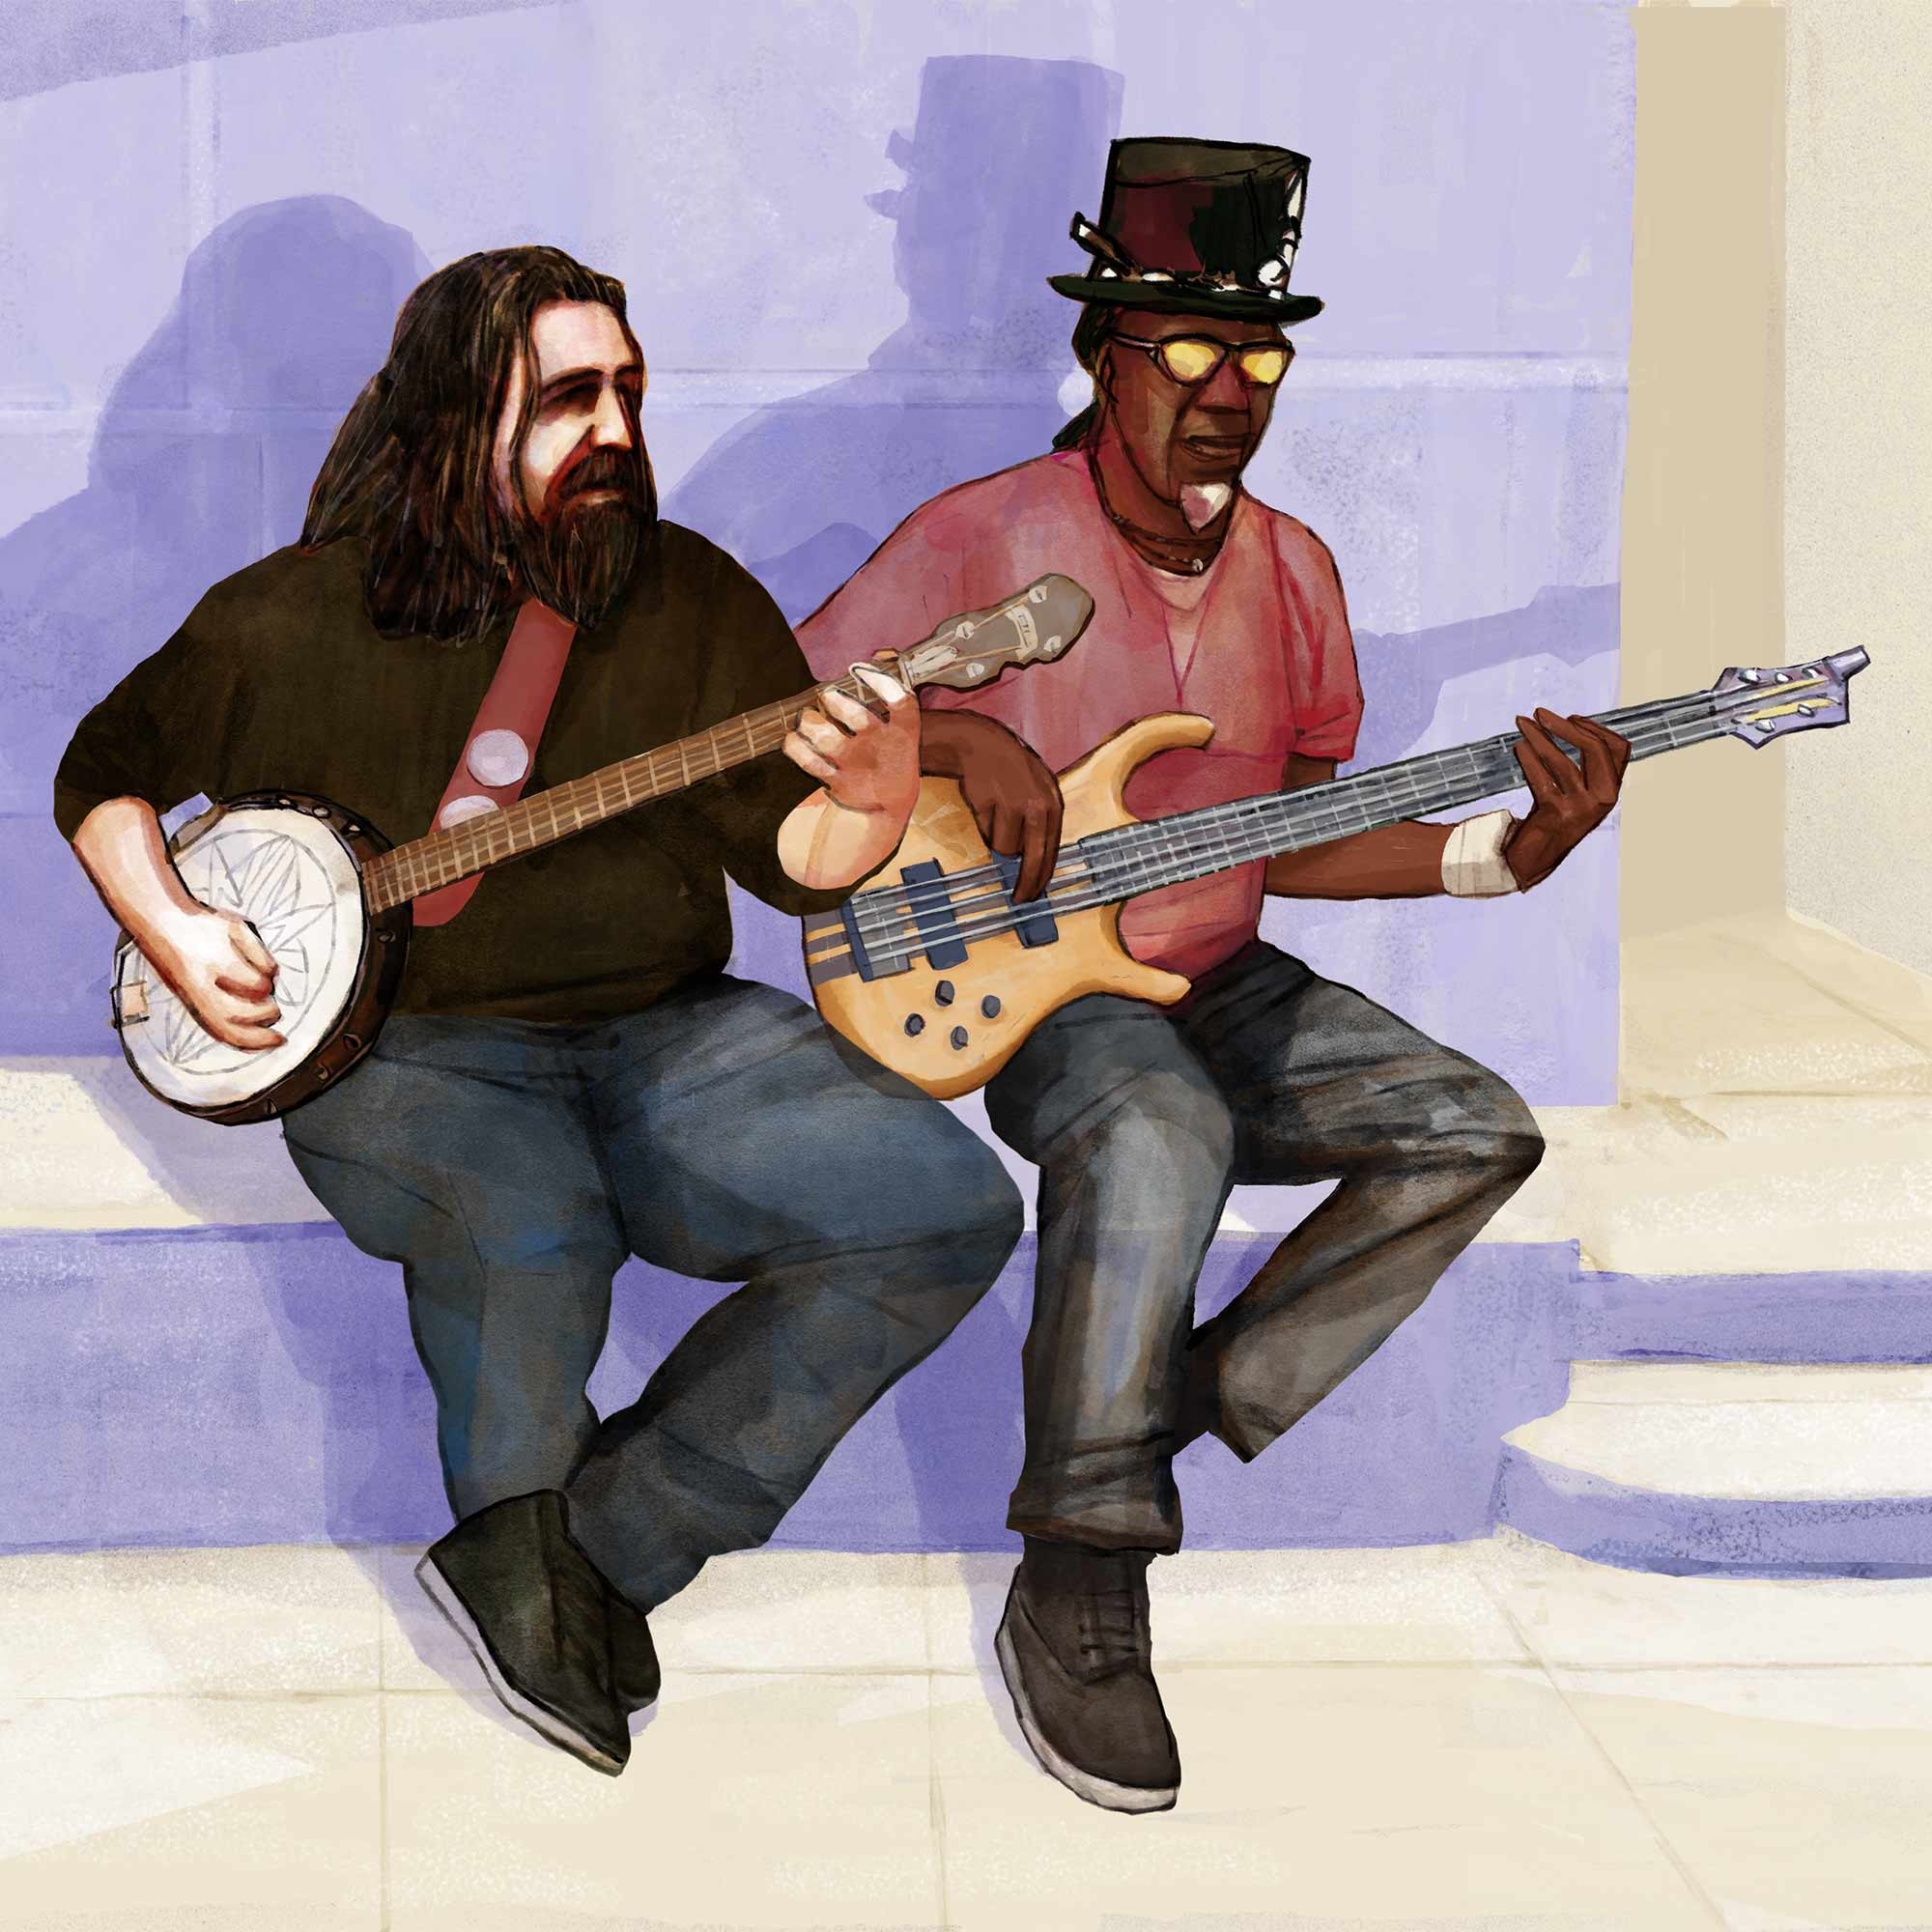 Mario Jodra illustration - Two musicians